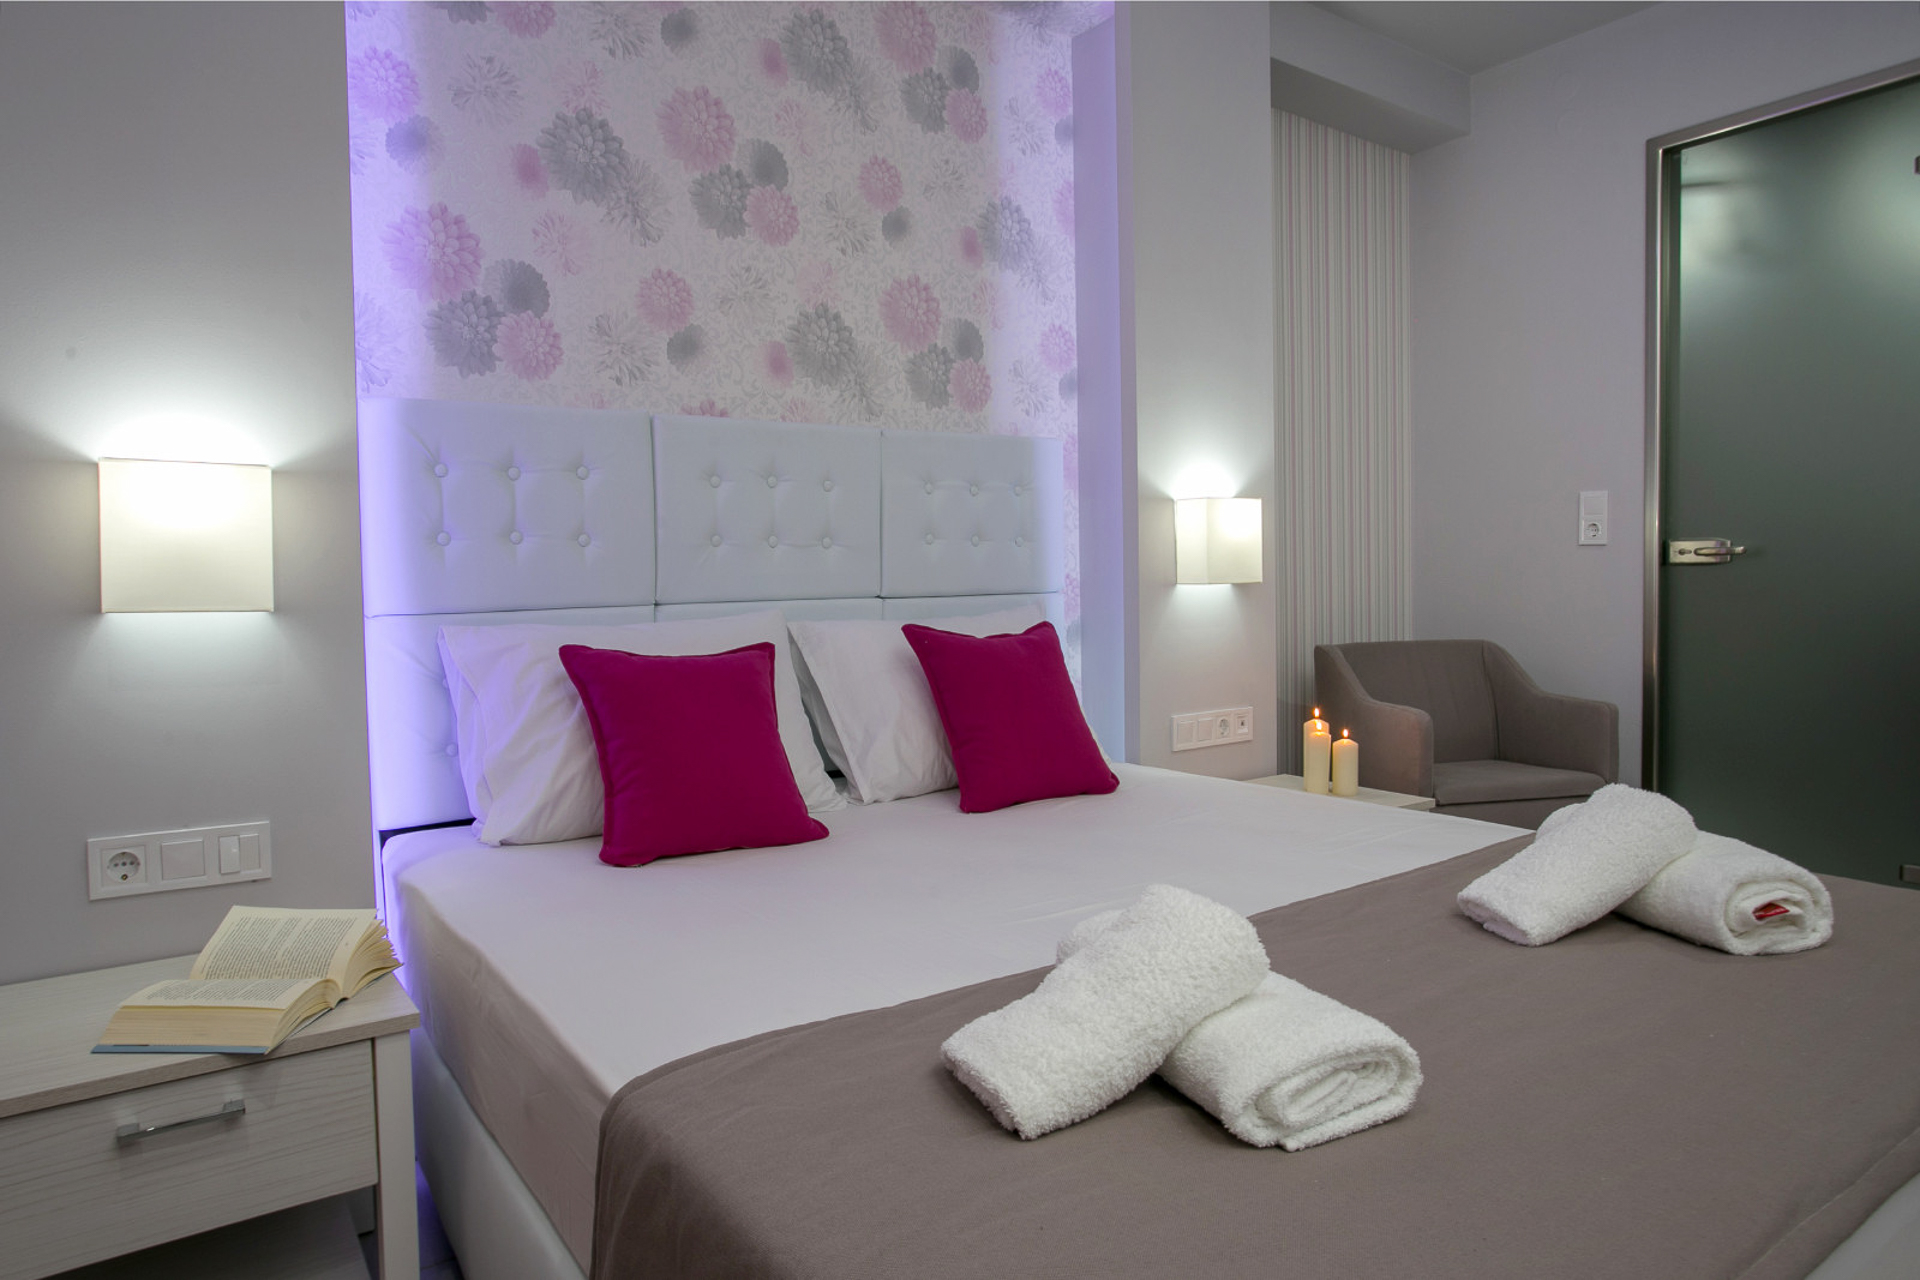 la feyra luxury rooms limenaria thassos amethyst room 3